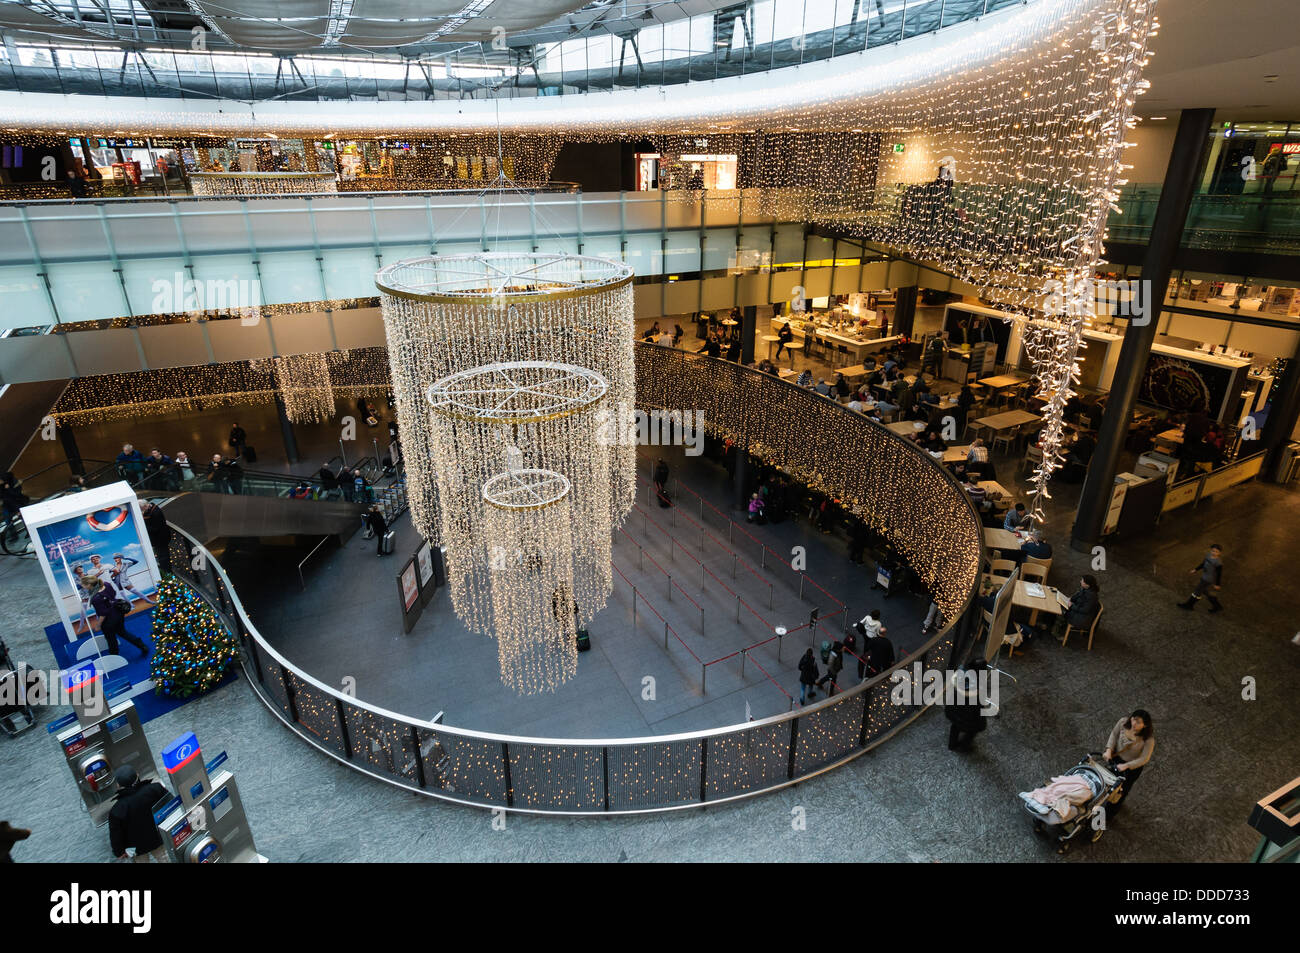 Zurich airport hall - Stock Image